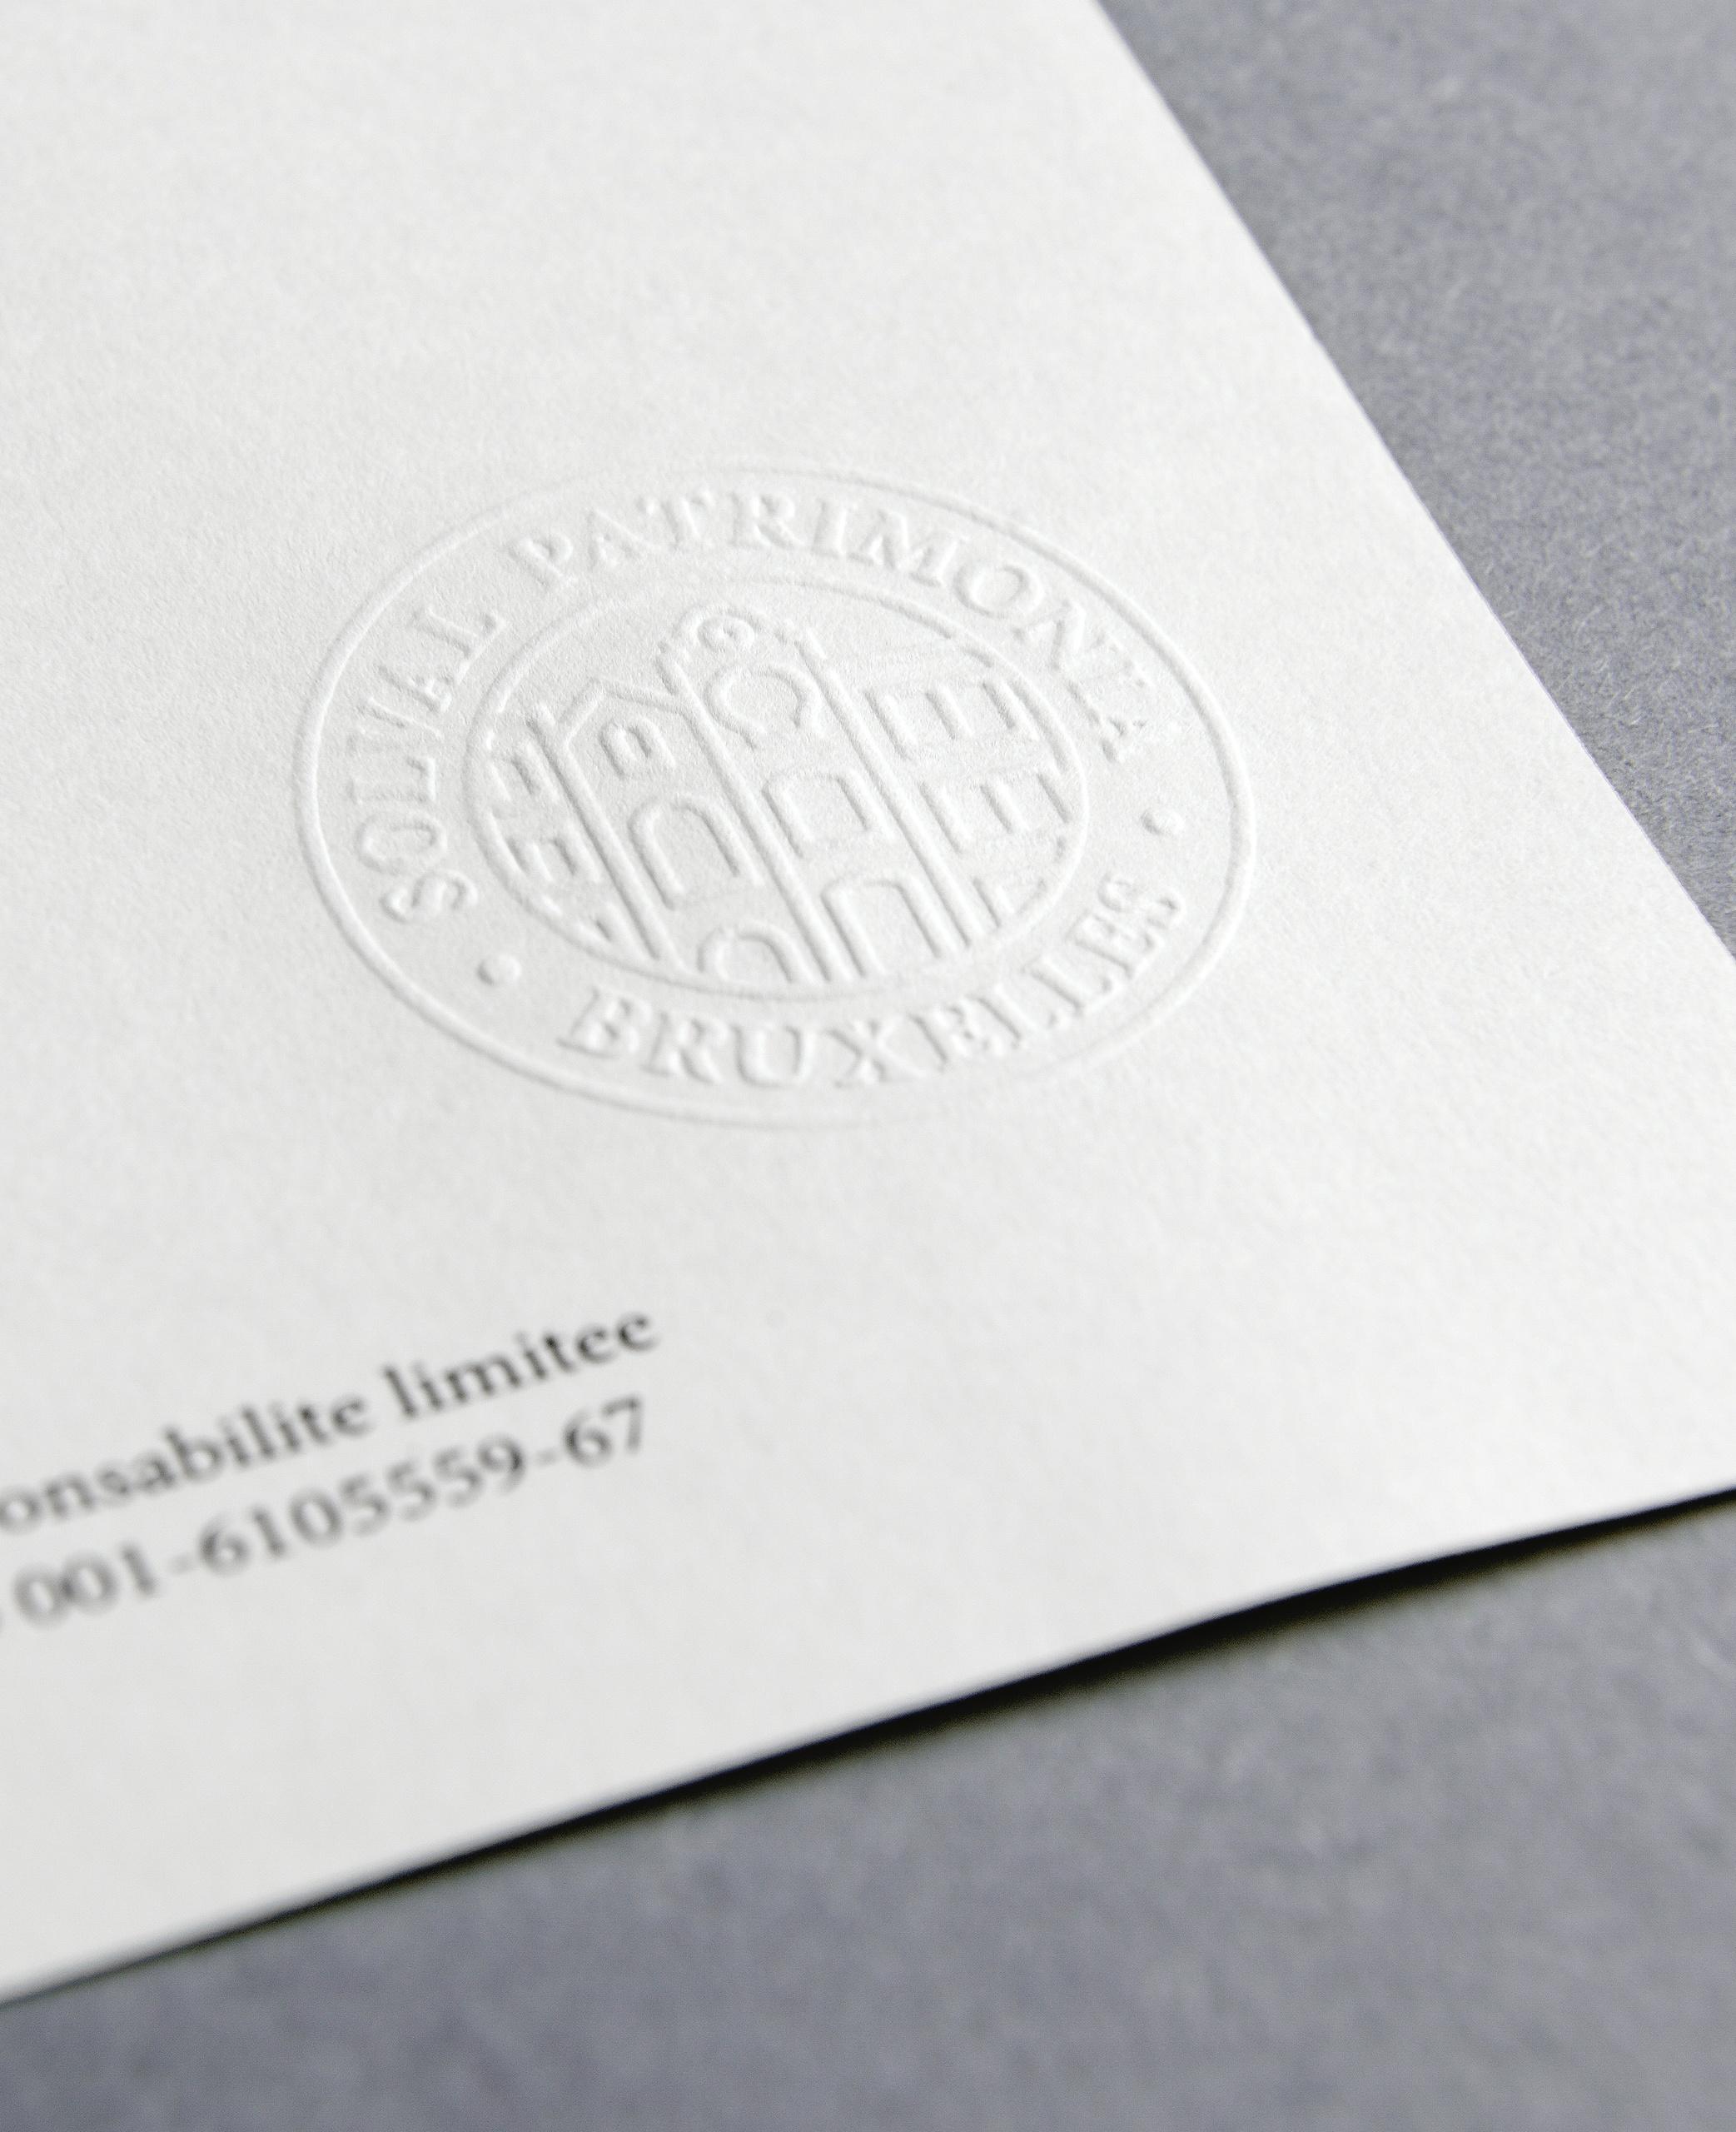 Letterpaper Stamped Embossed Seal Close Up